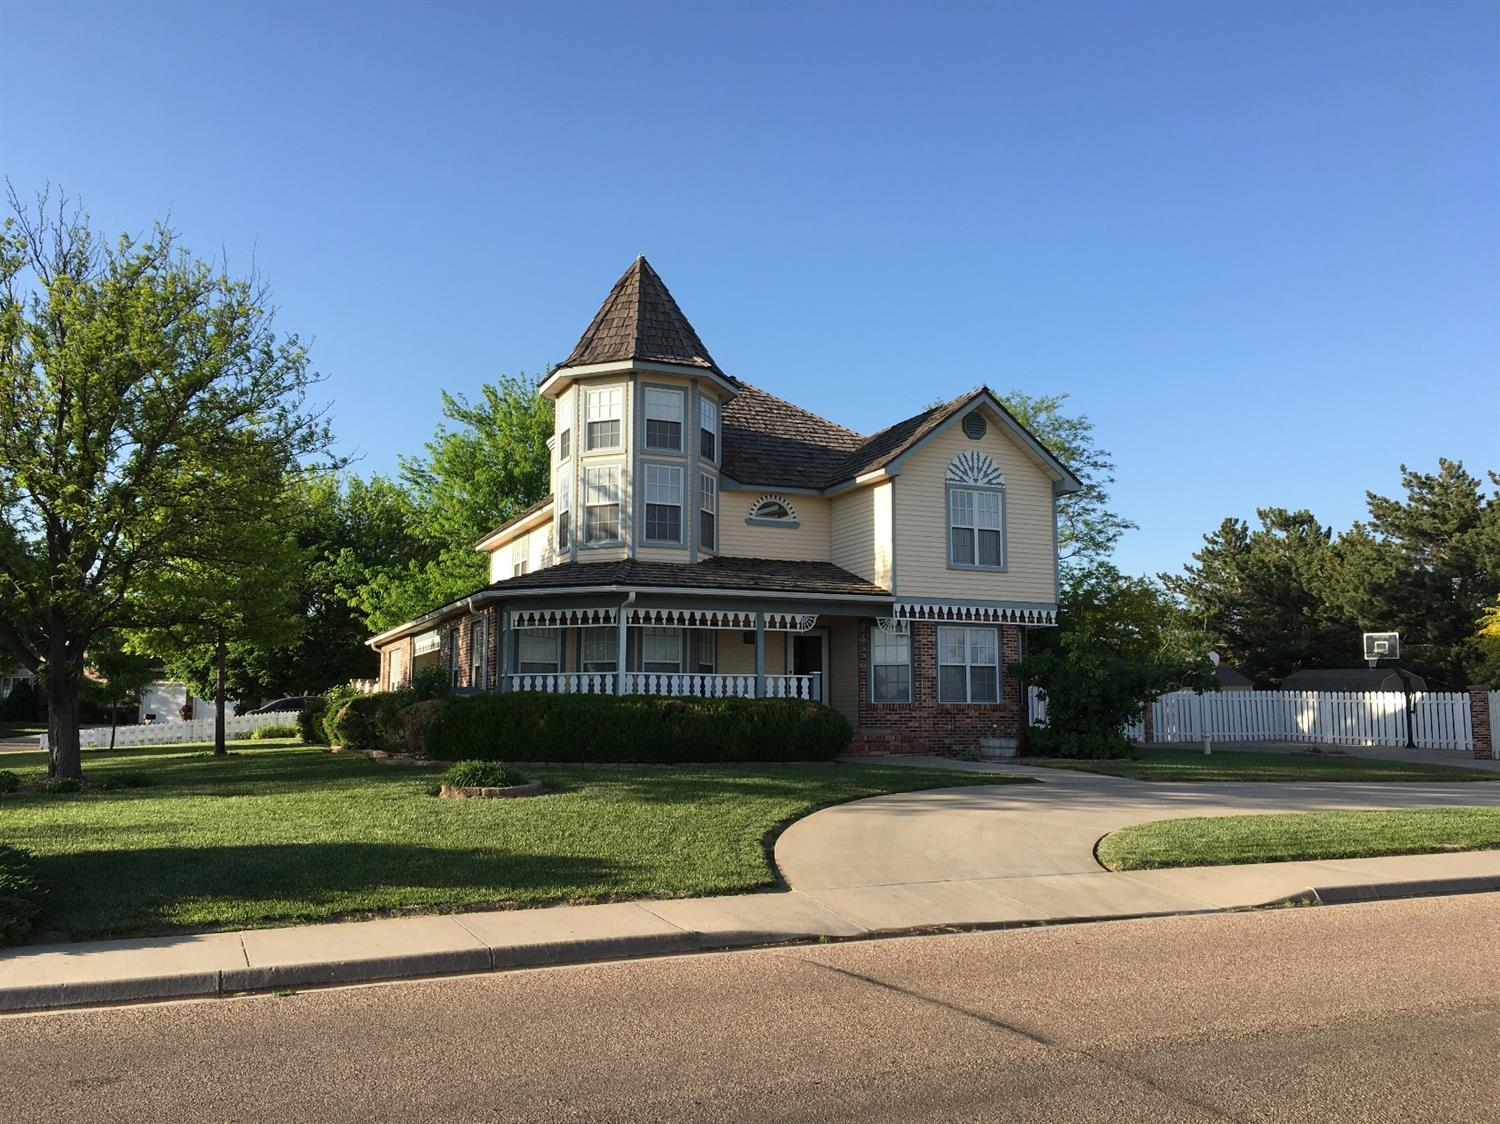 Commercial Property For Sale In Garden City Kansas